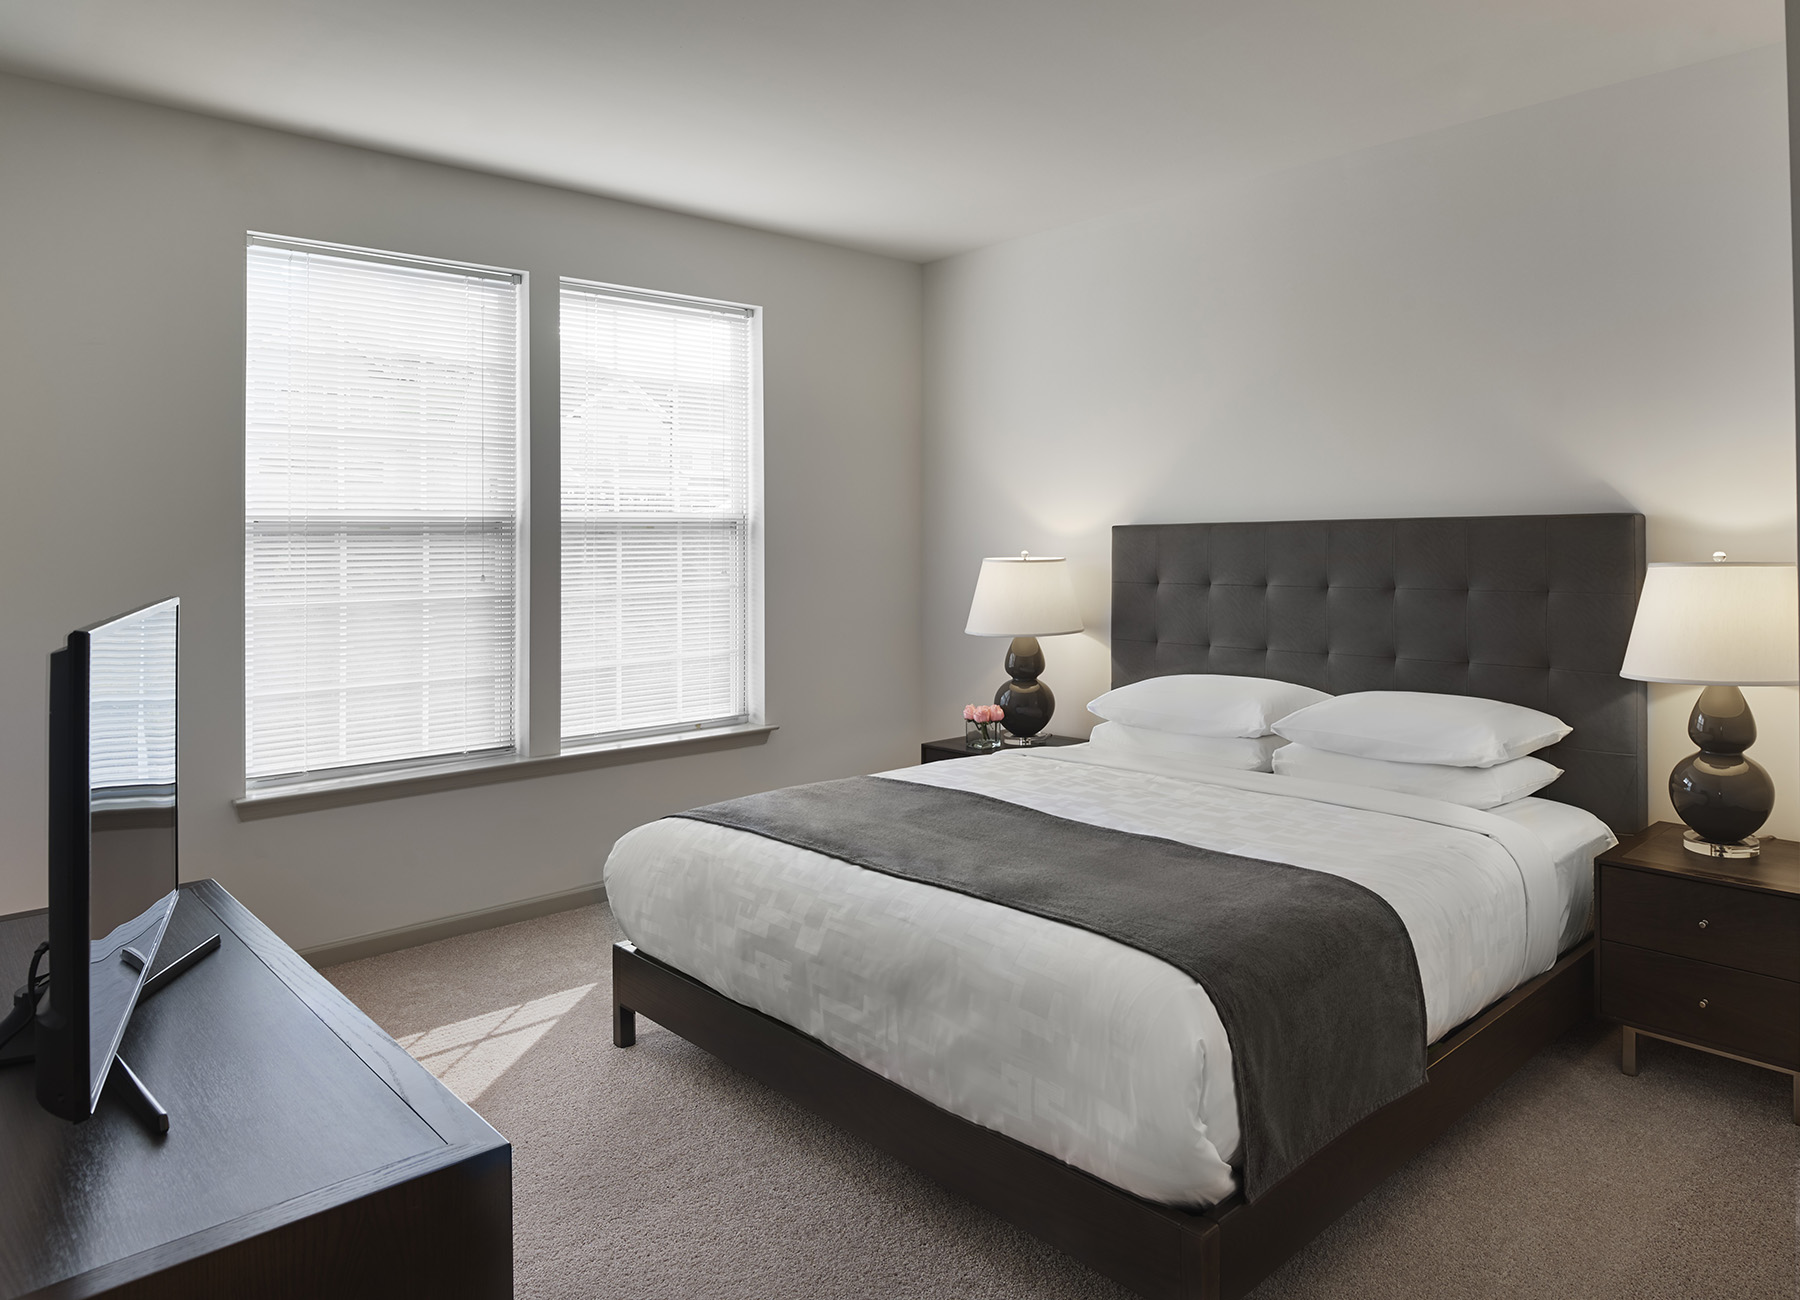 Bedroom with king bed, white sheets, dark gray blanket, and end tables